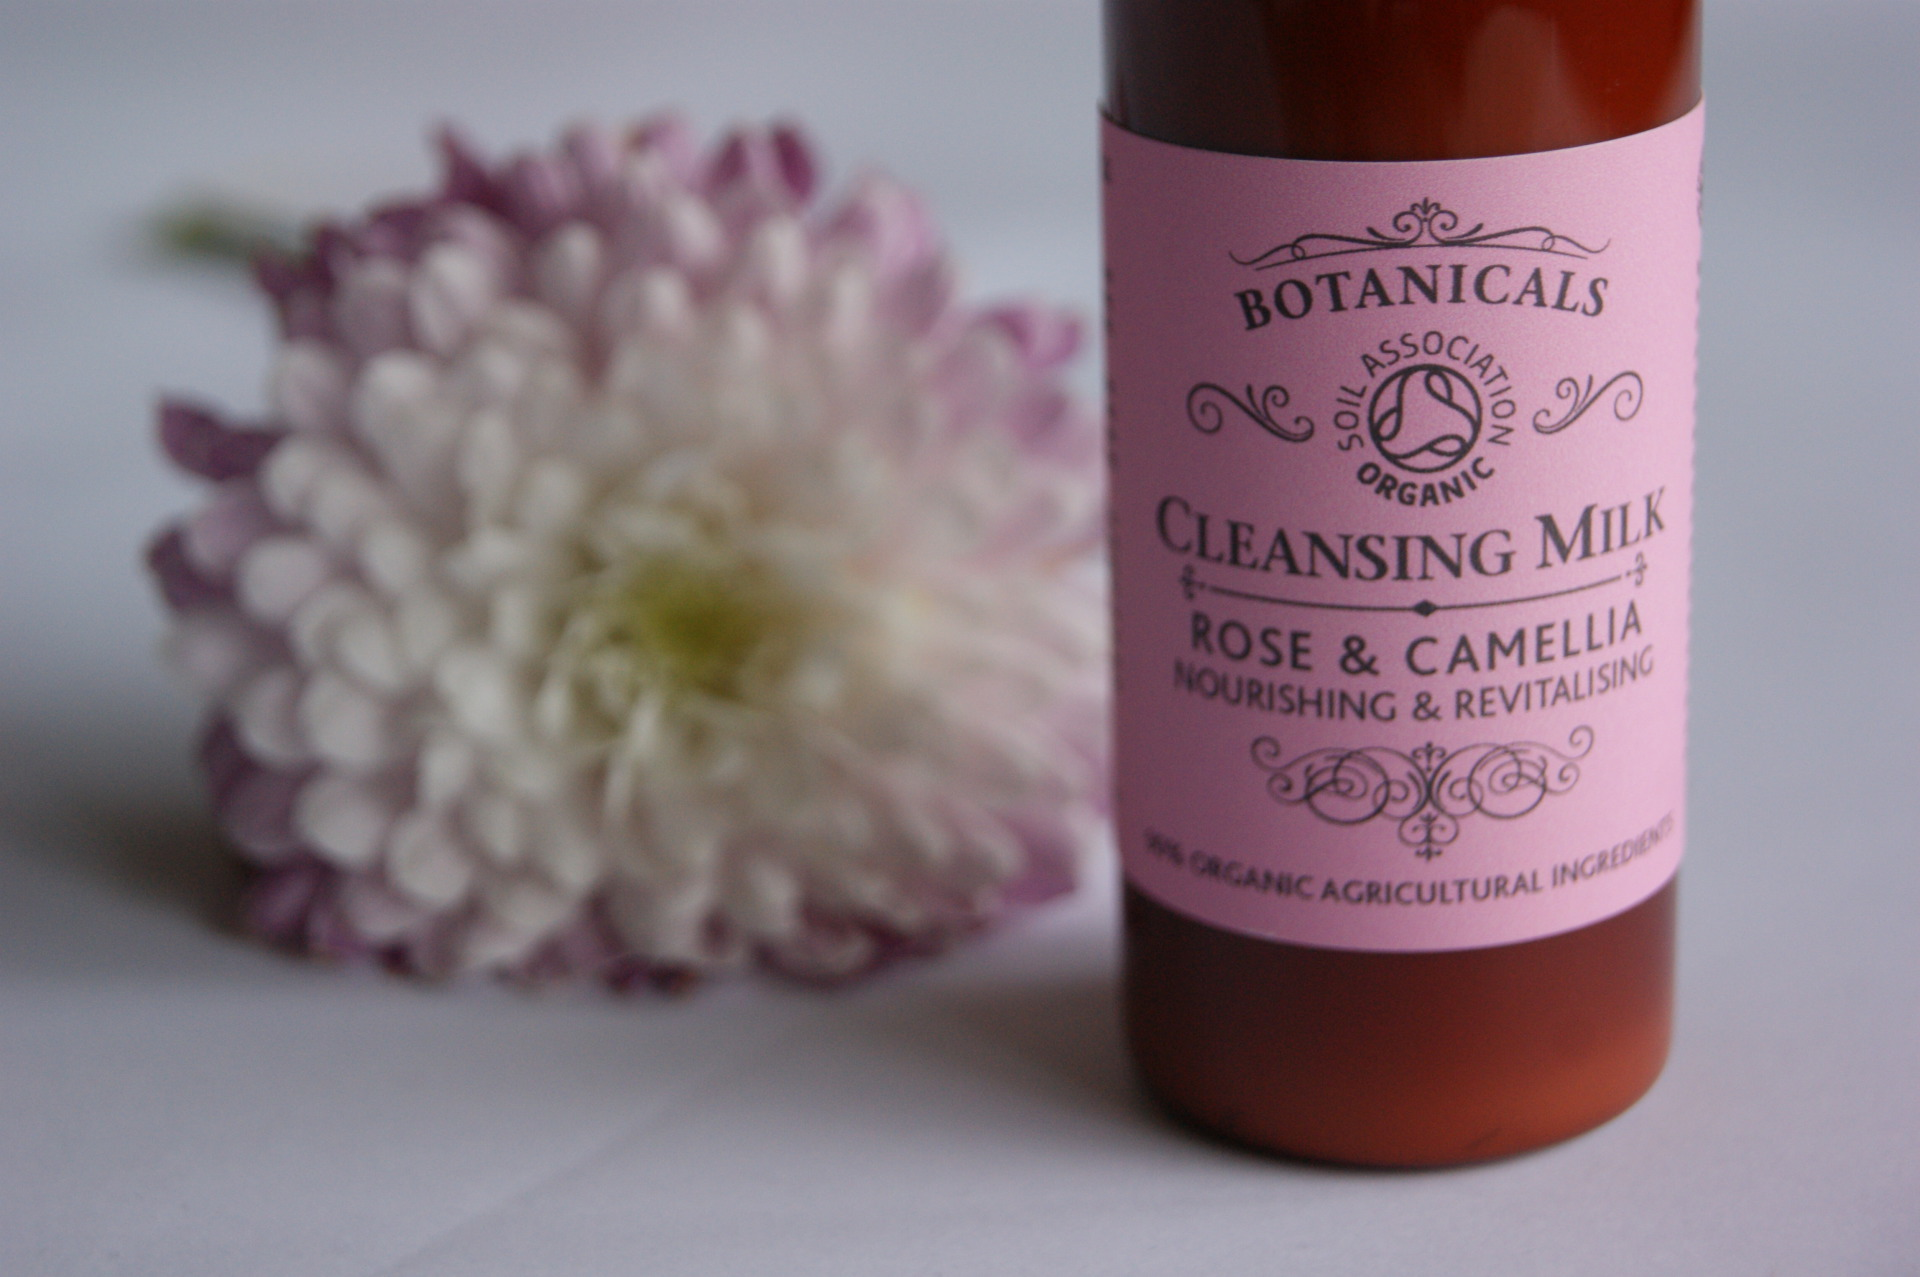 Botanicals - Rose & Camellia Cleansing Milk